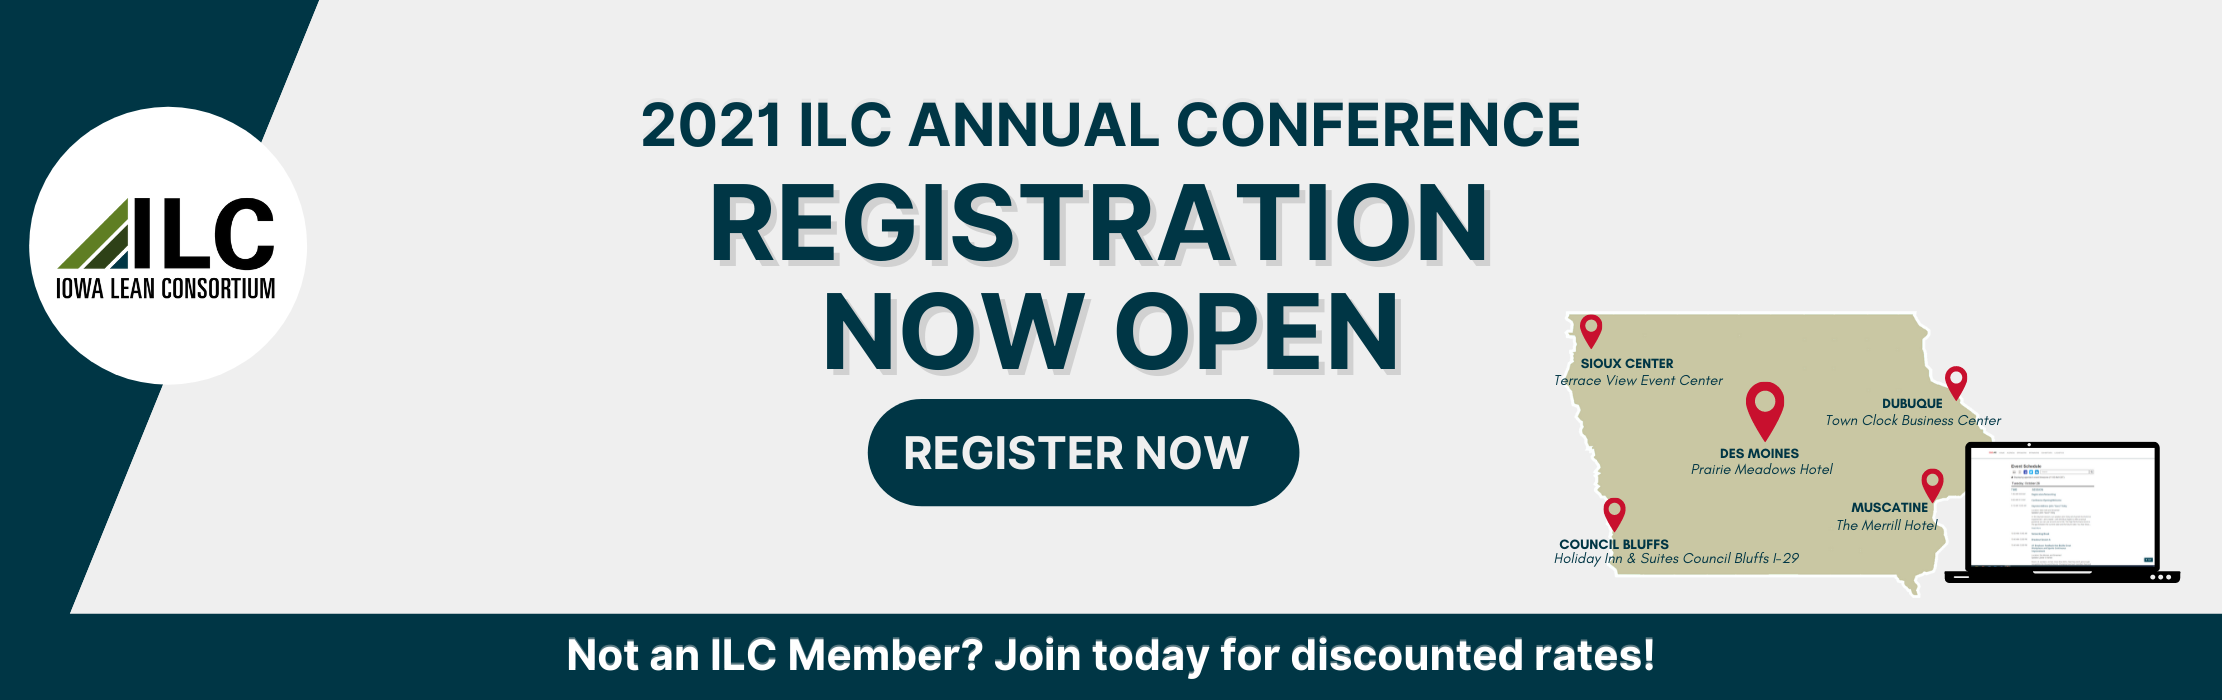 2021 ILC Annual Conference registration now open.